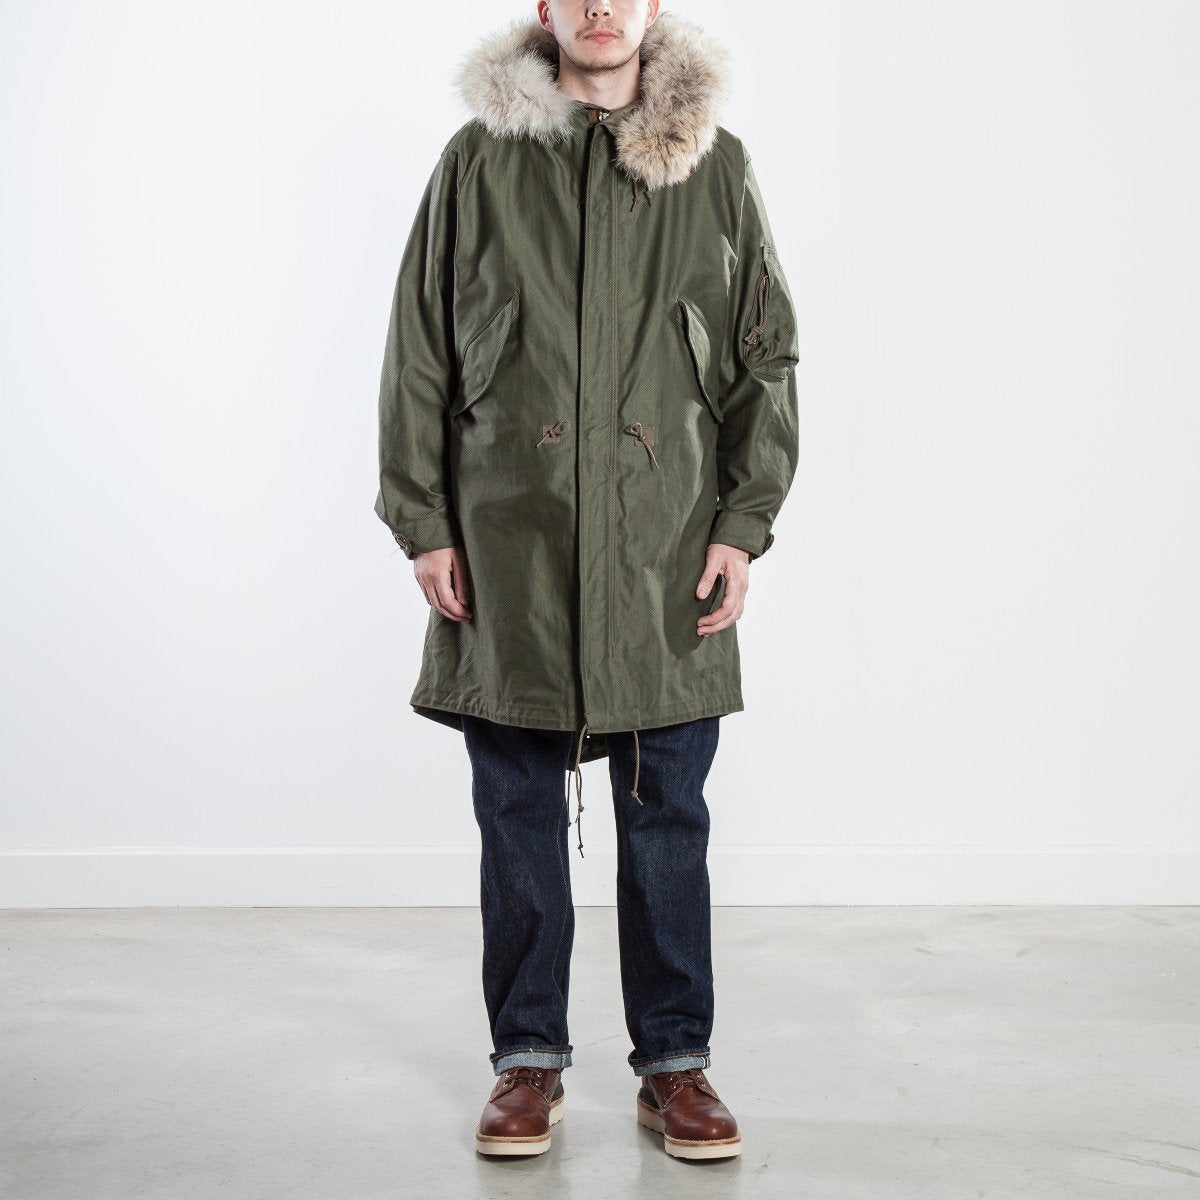 The Real McCoy's M-1948 Parka MJ18113-150